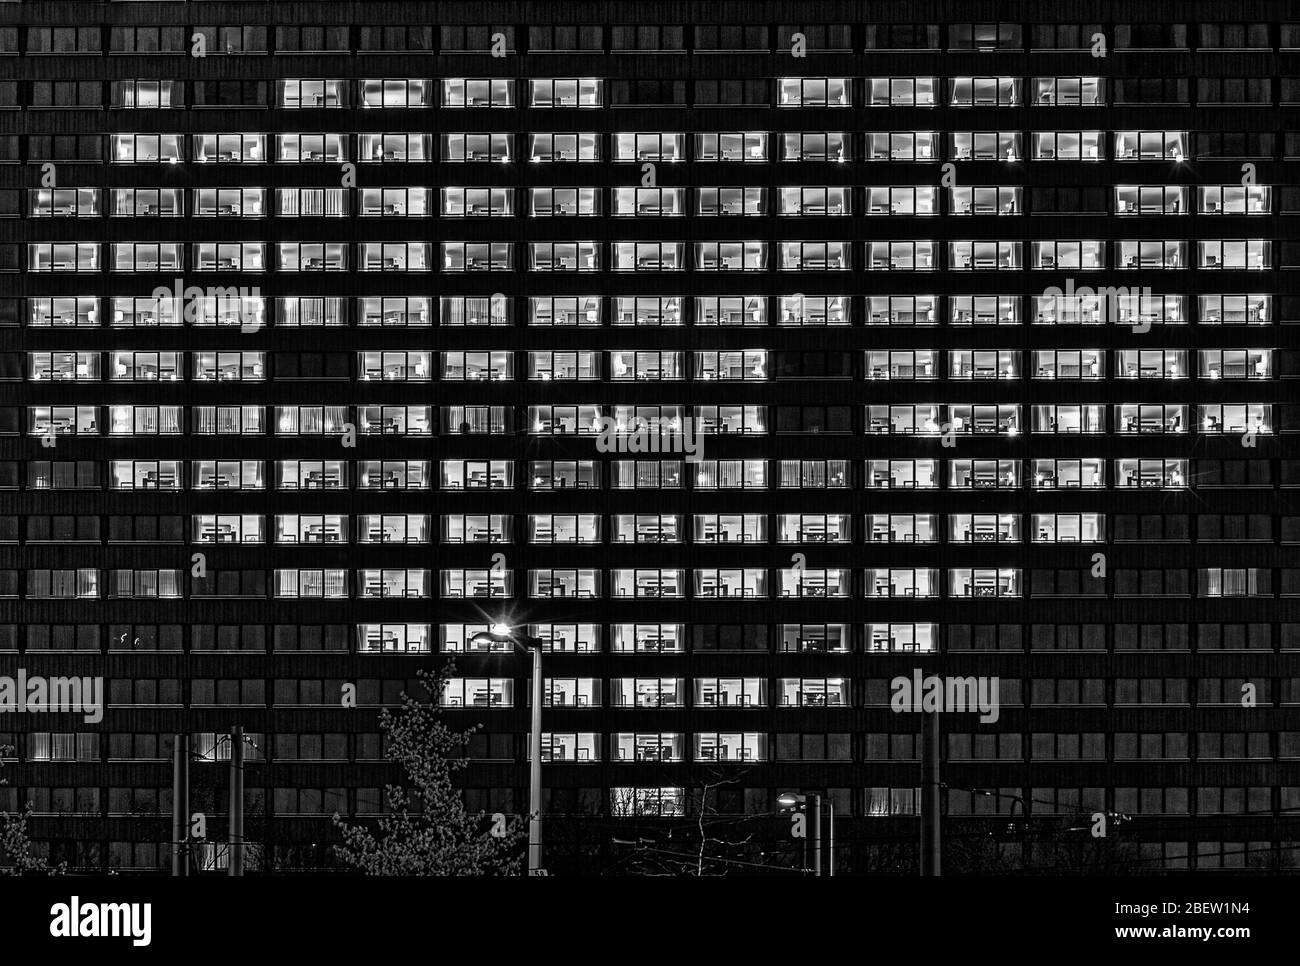 Heart shape illuminated windows of a building as a gesture for people who support others like now in hard corona virus times symbolically in black in Stock Photo